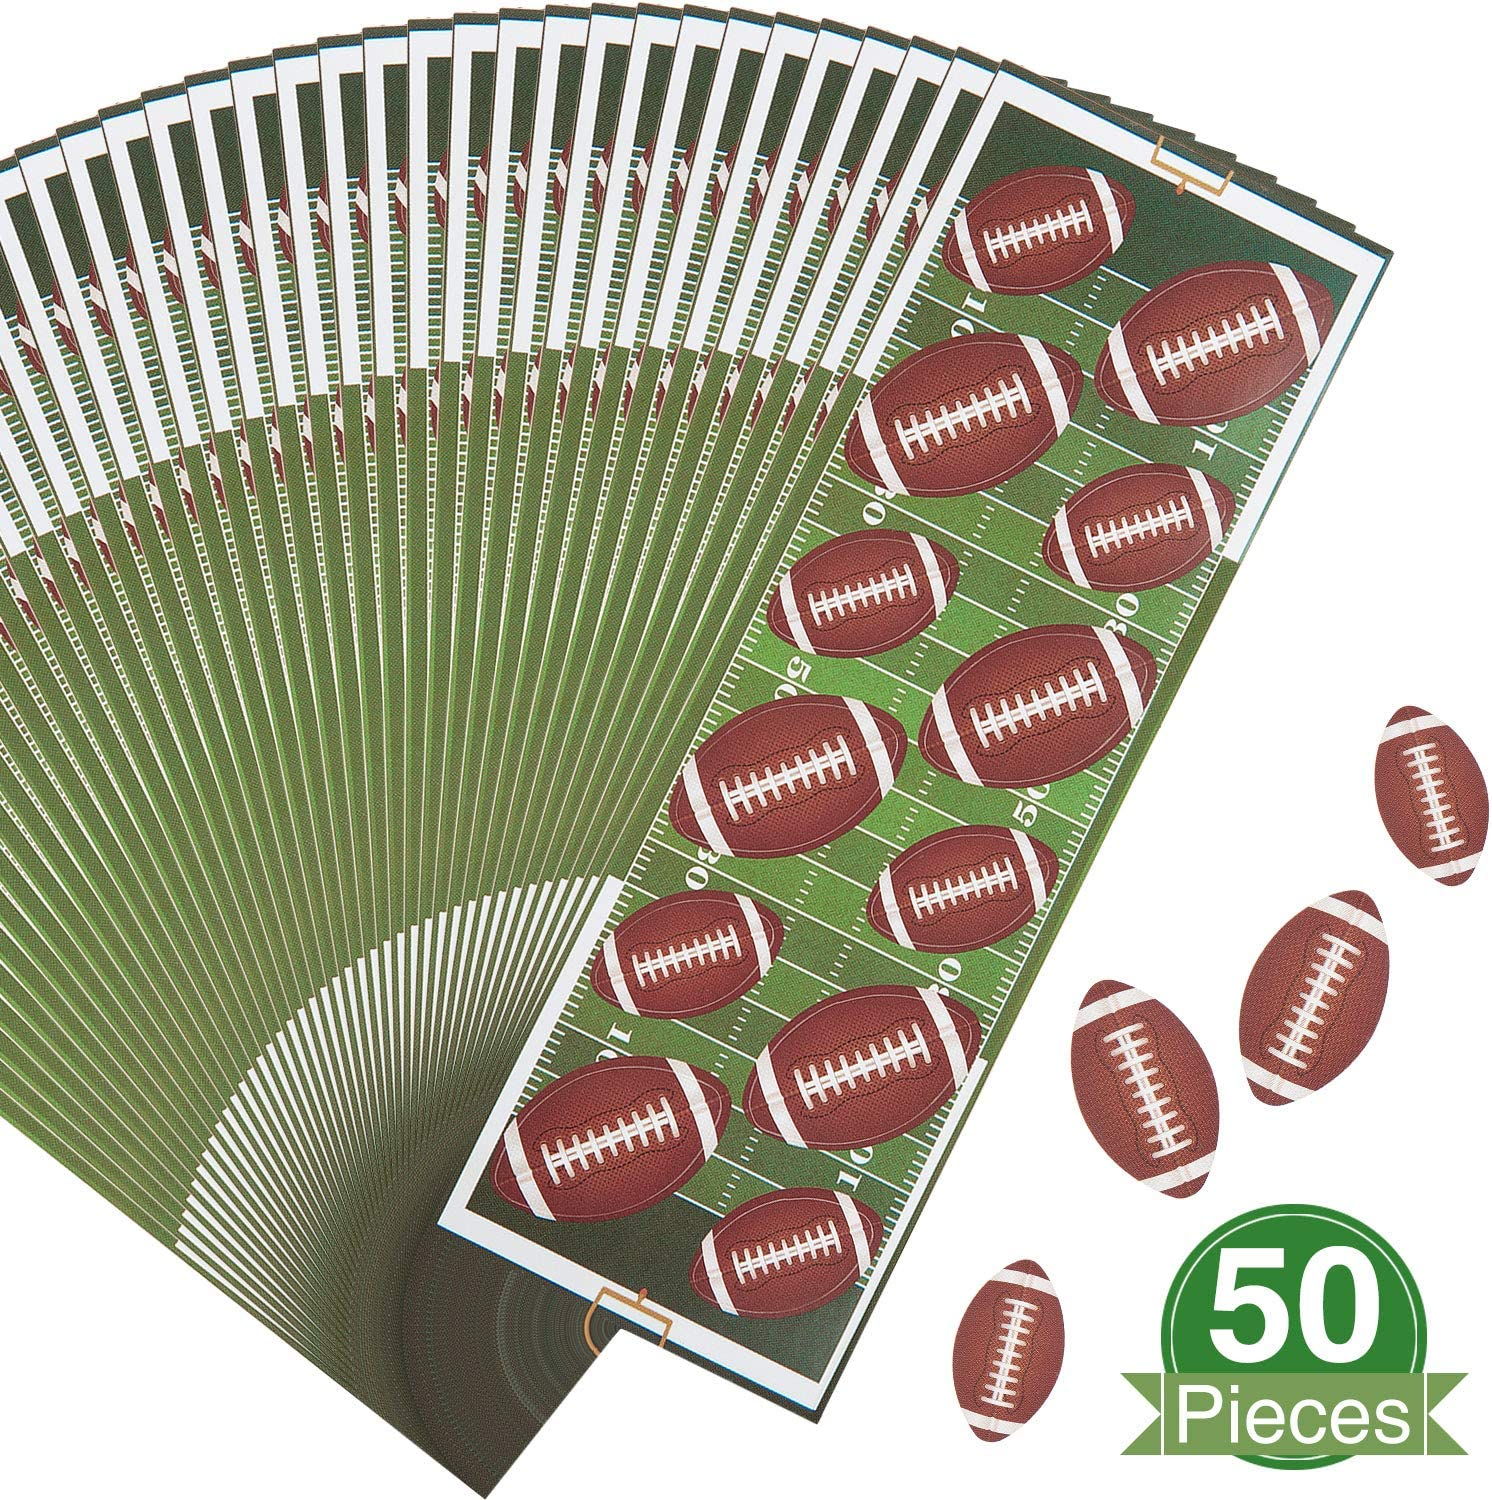 Outus 600 Pieces Self-Adhesive Football Stickers, Baseball Stickers, Soccer Stickers, Volleyball Stickers Sheet for Sport Theme Scrapbooks, Cards, DIY (Football)